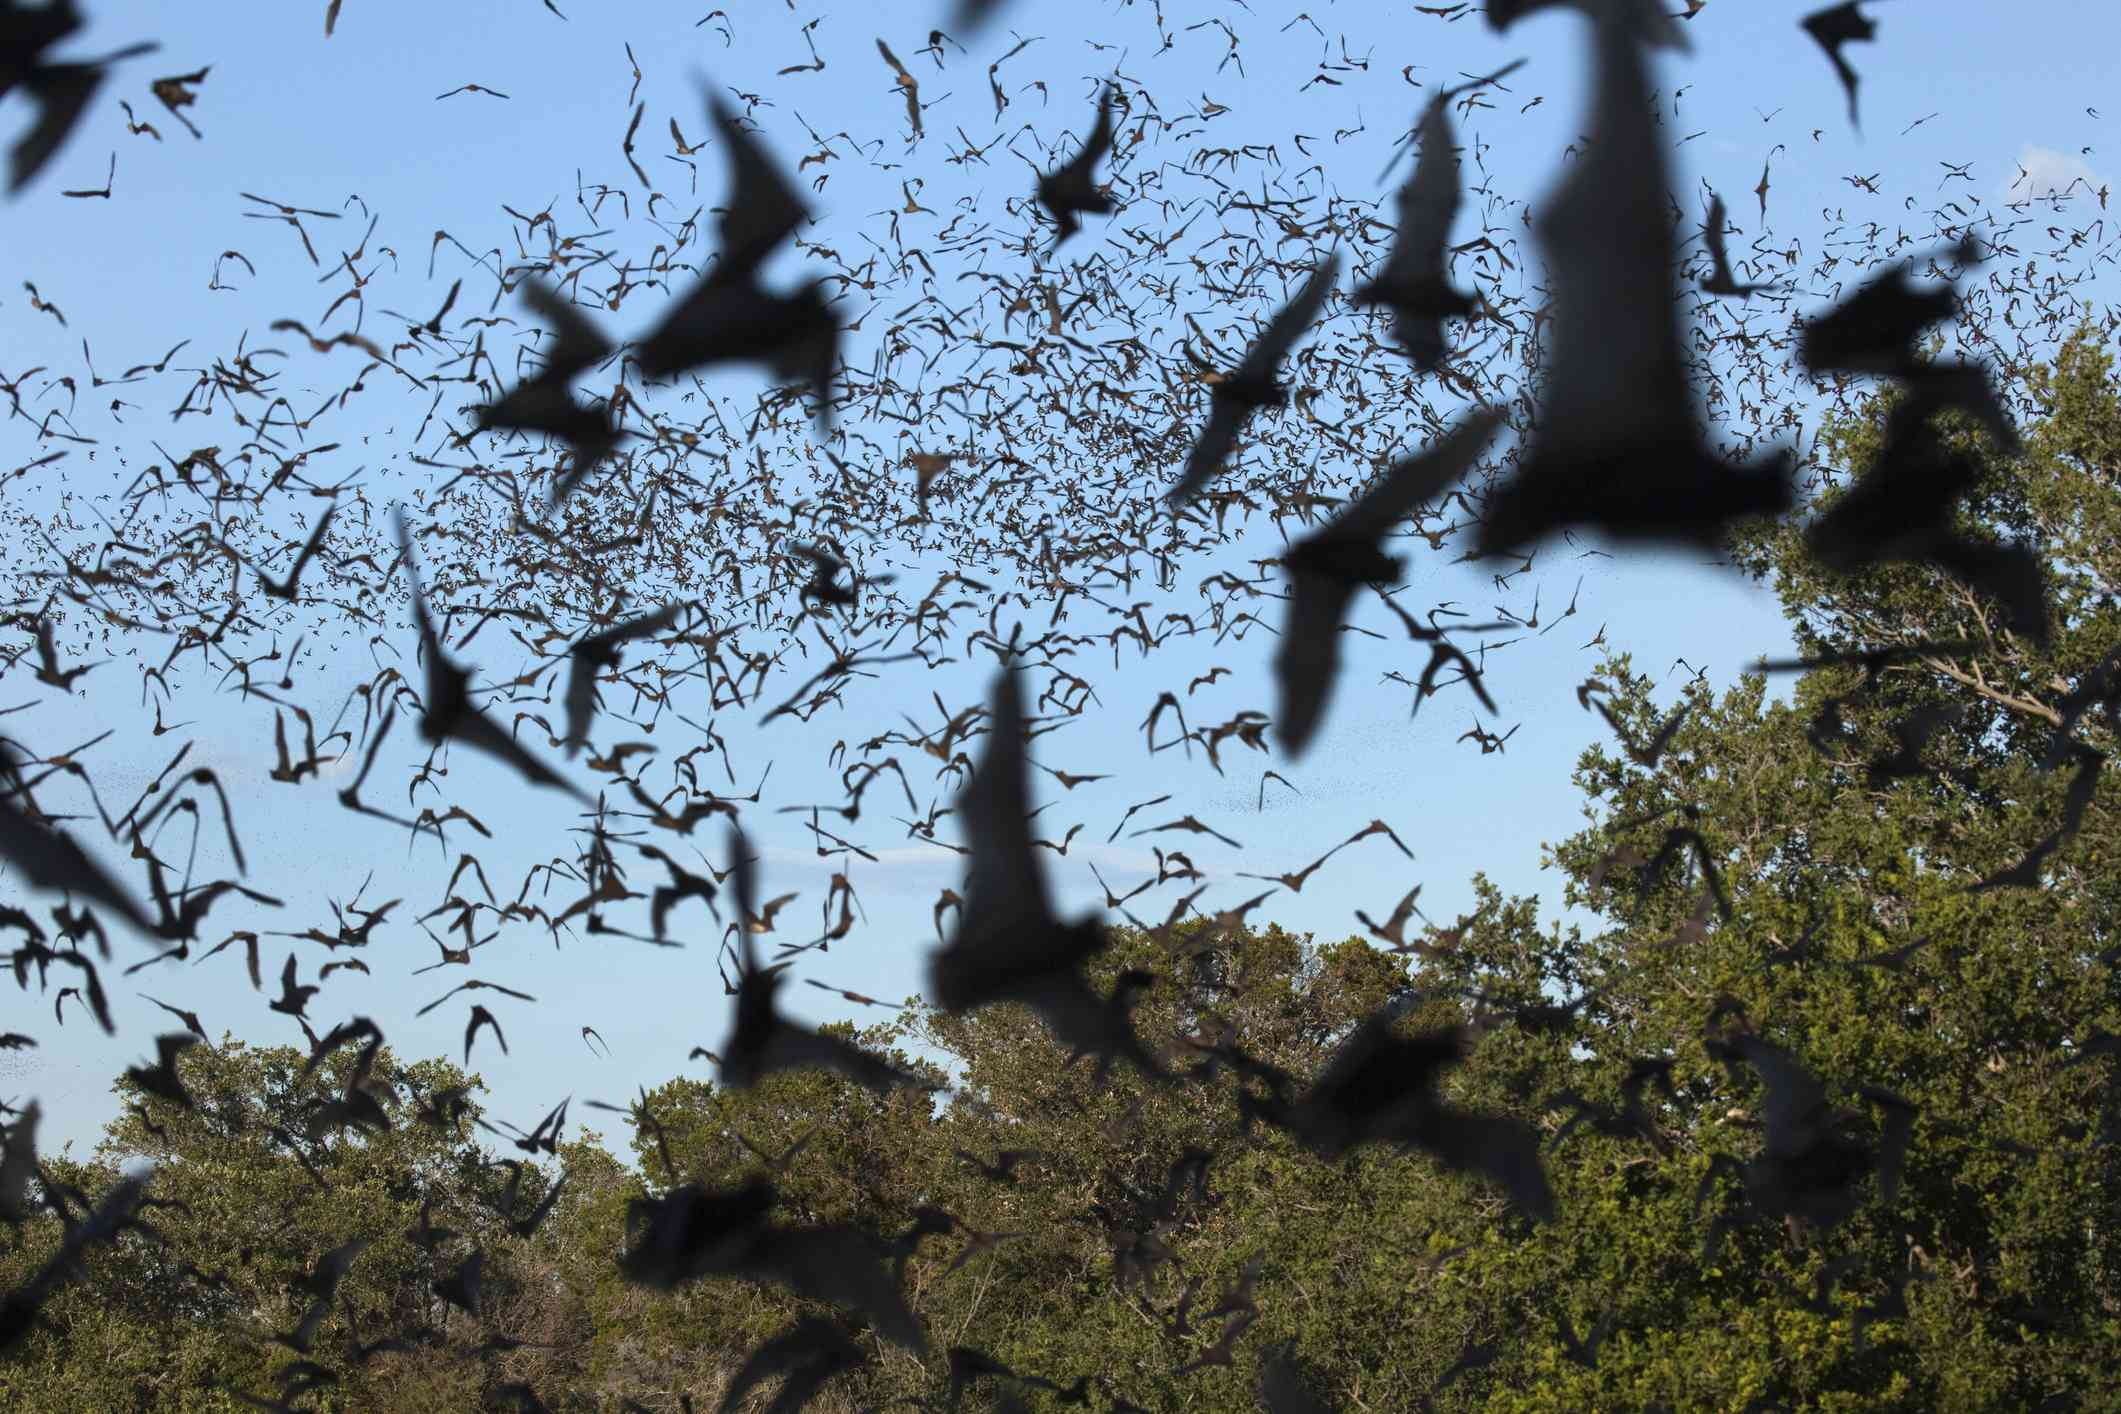 Swarm of Mexican-free tailed bats flying